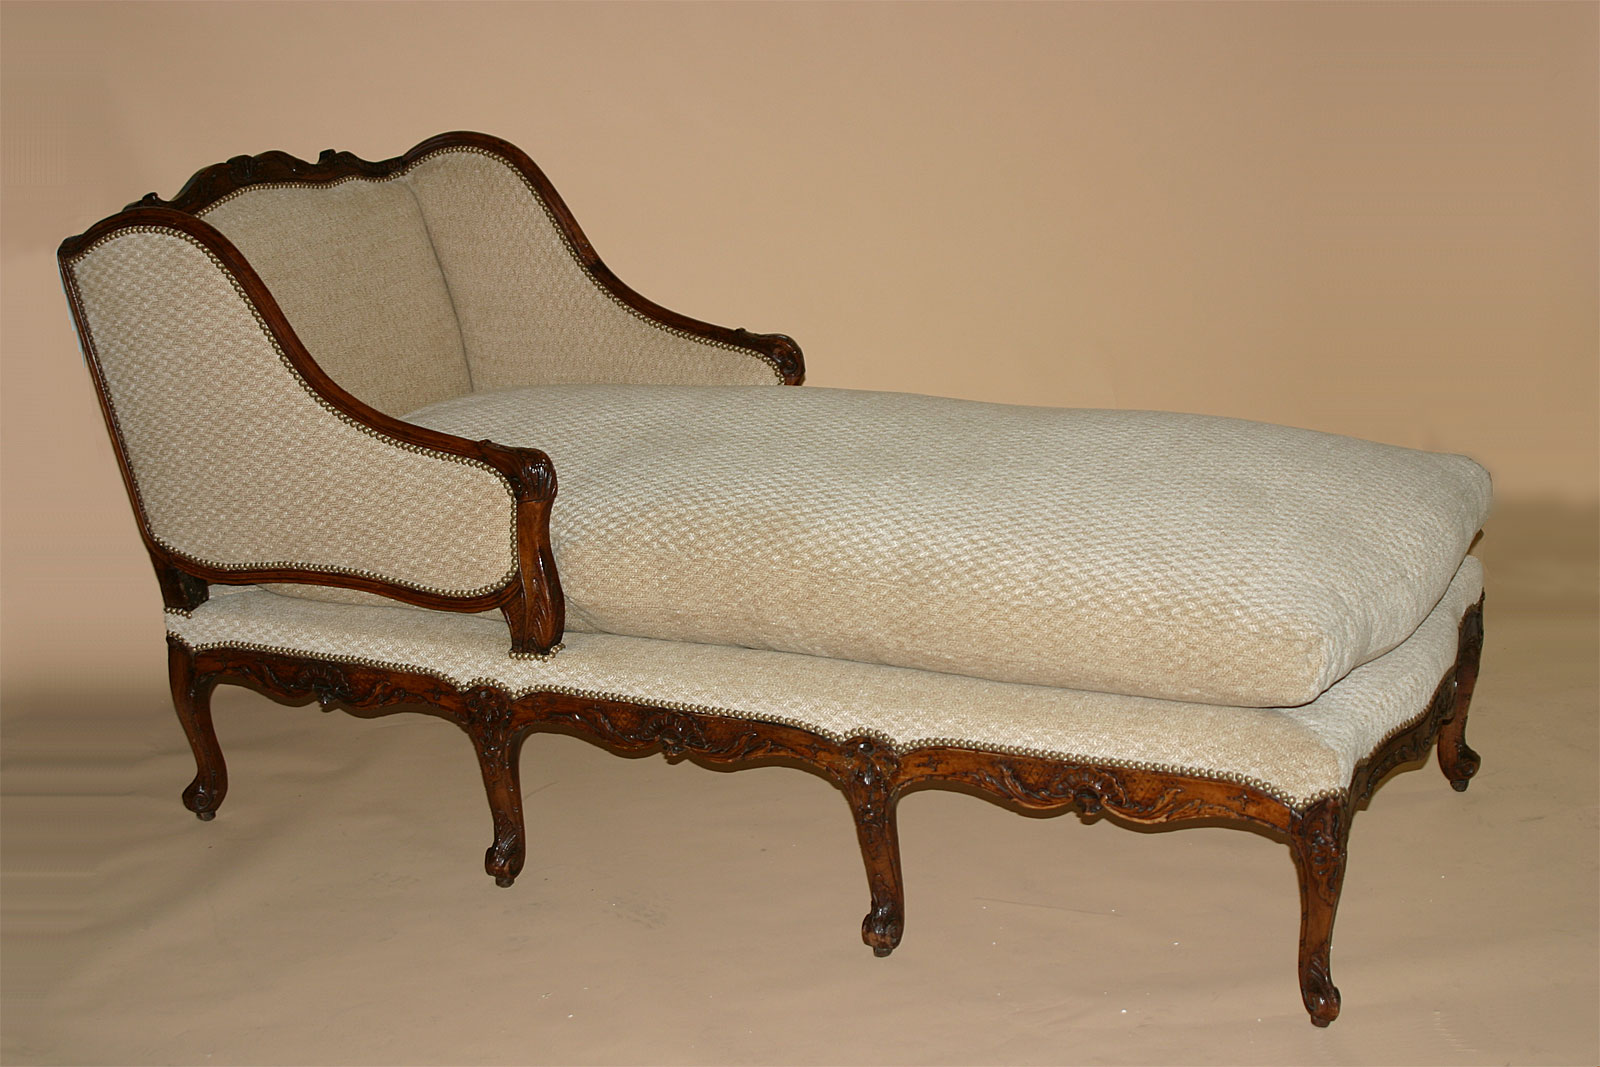 french louis xv period chaise longue for sale antiques ForChaise For Sale